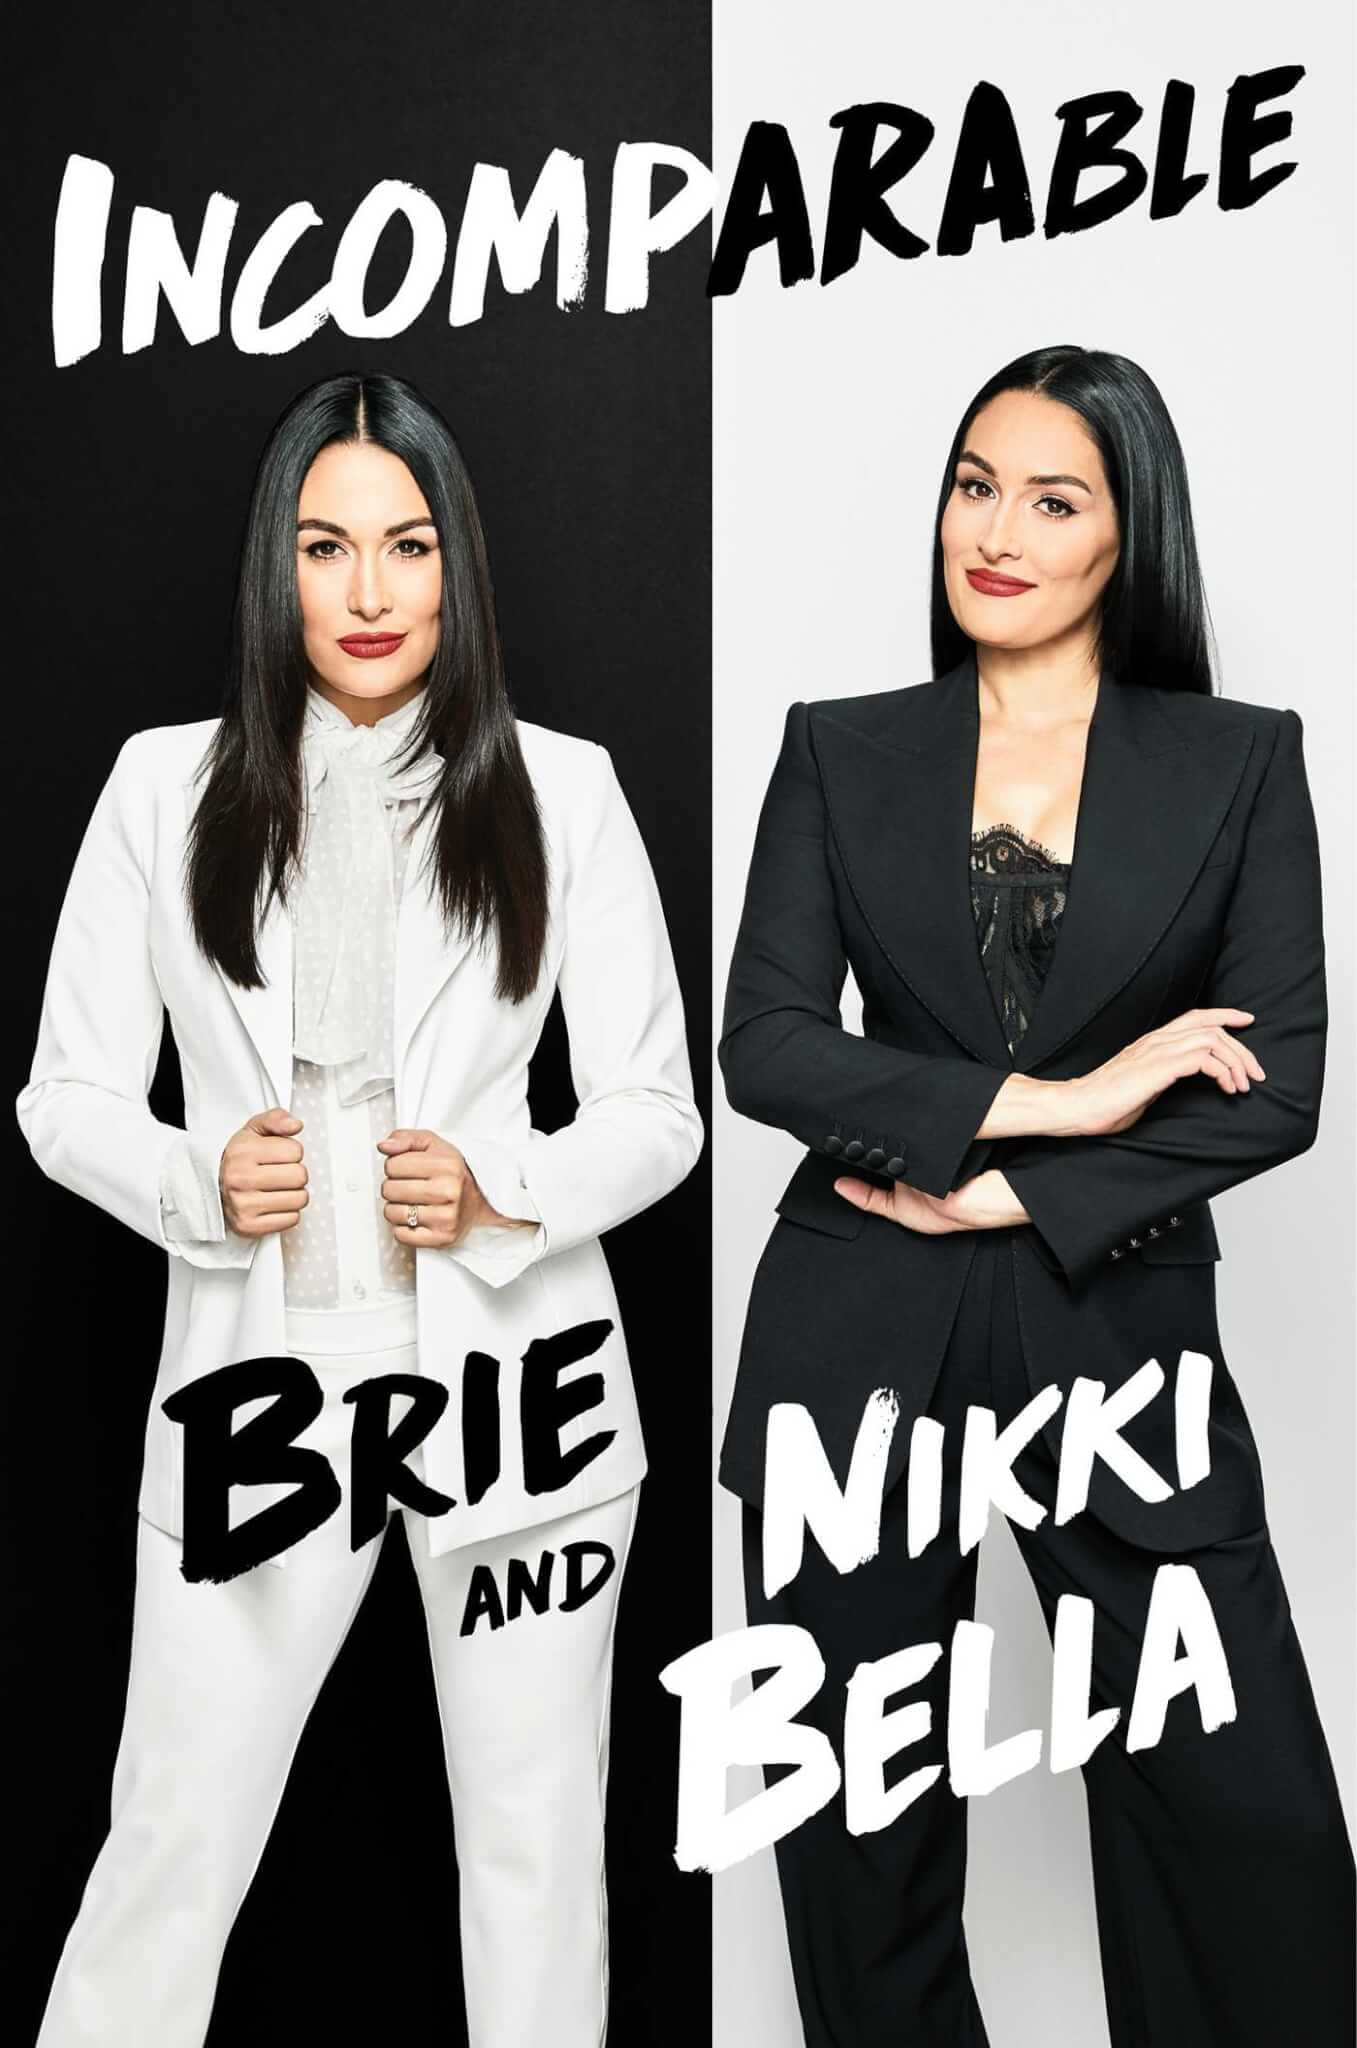 Incomparable by Brie Bella, Nikki Bella